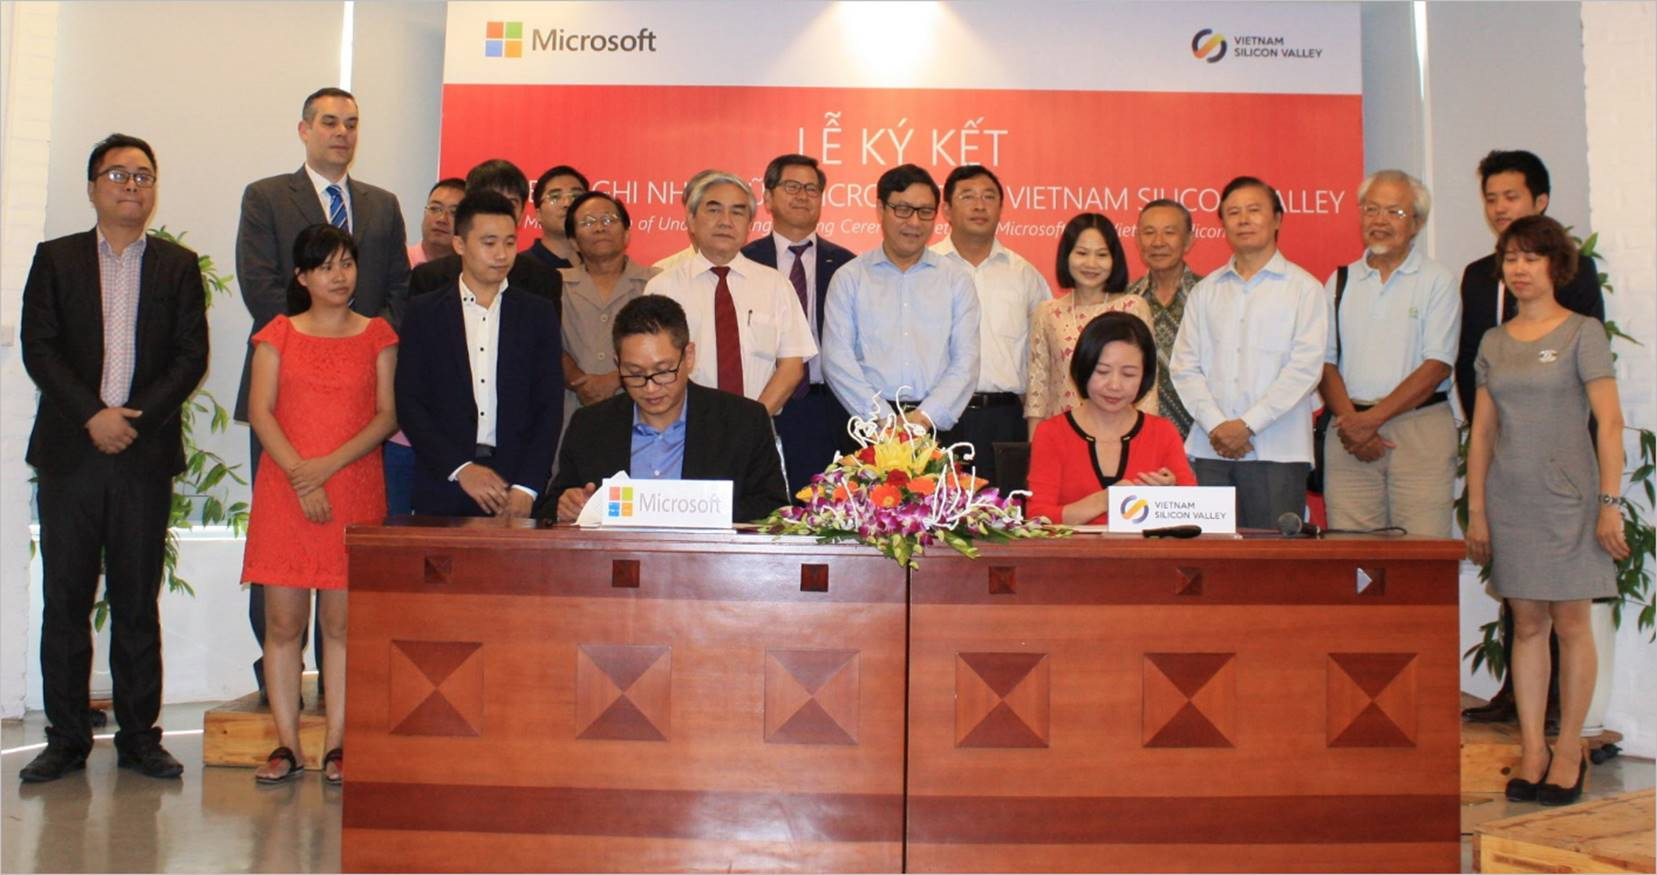 160926-microsoft-vietnam-silicon-valley-01